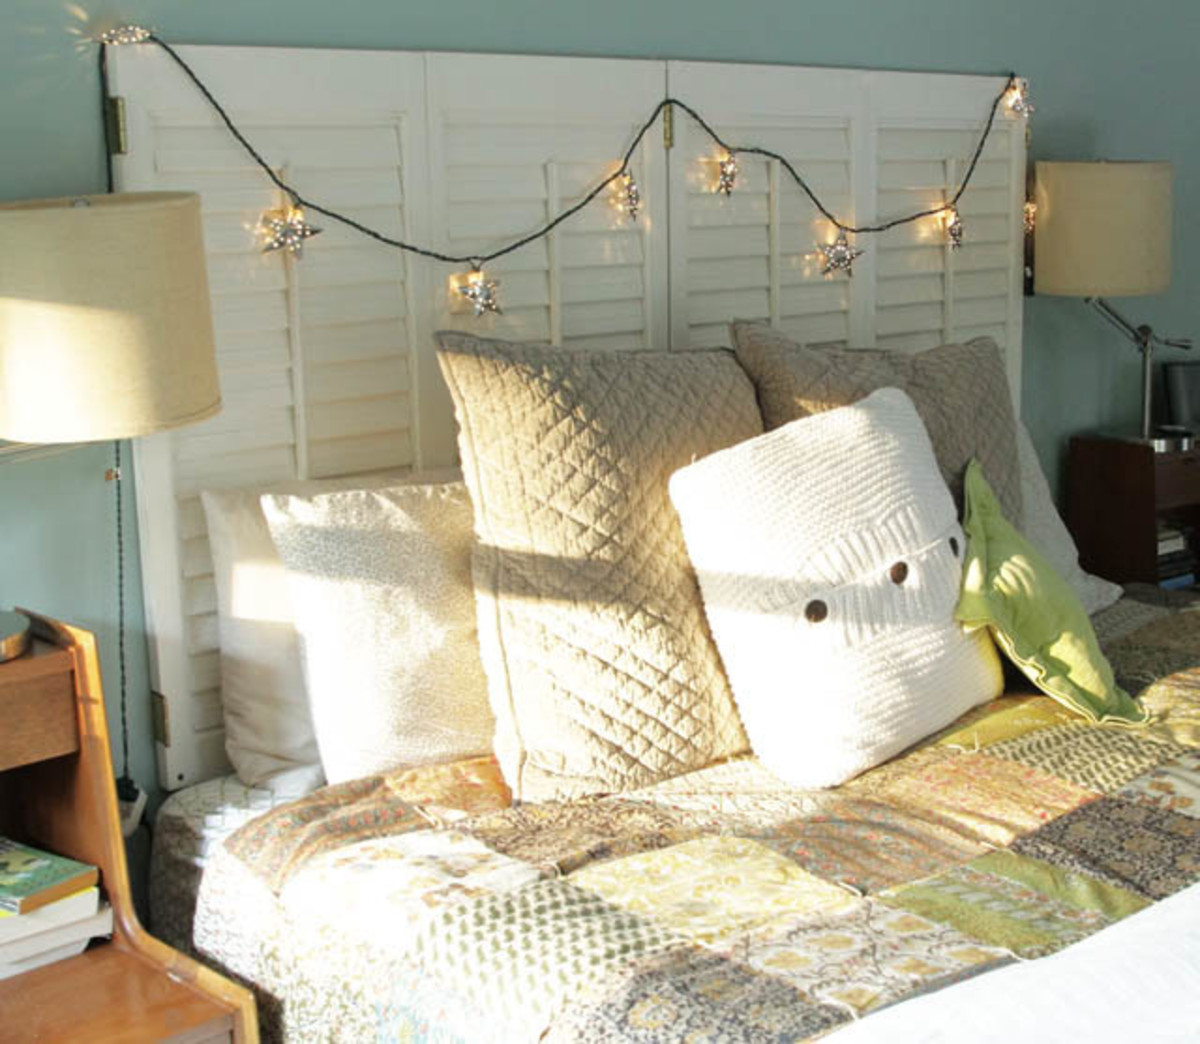 These were made with the plantation shutter headboards for the adorable bed